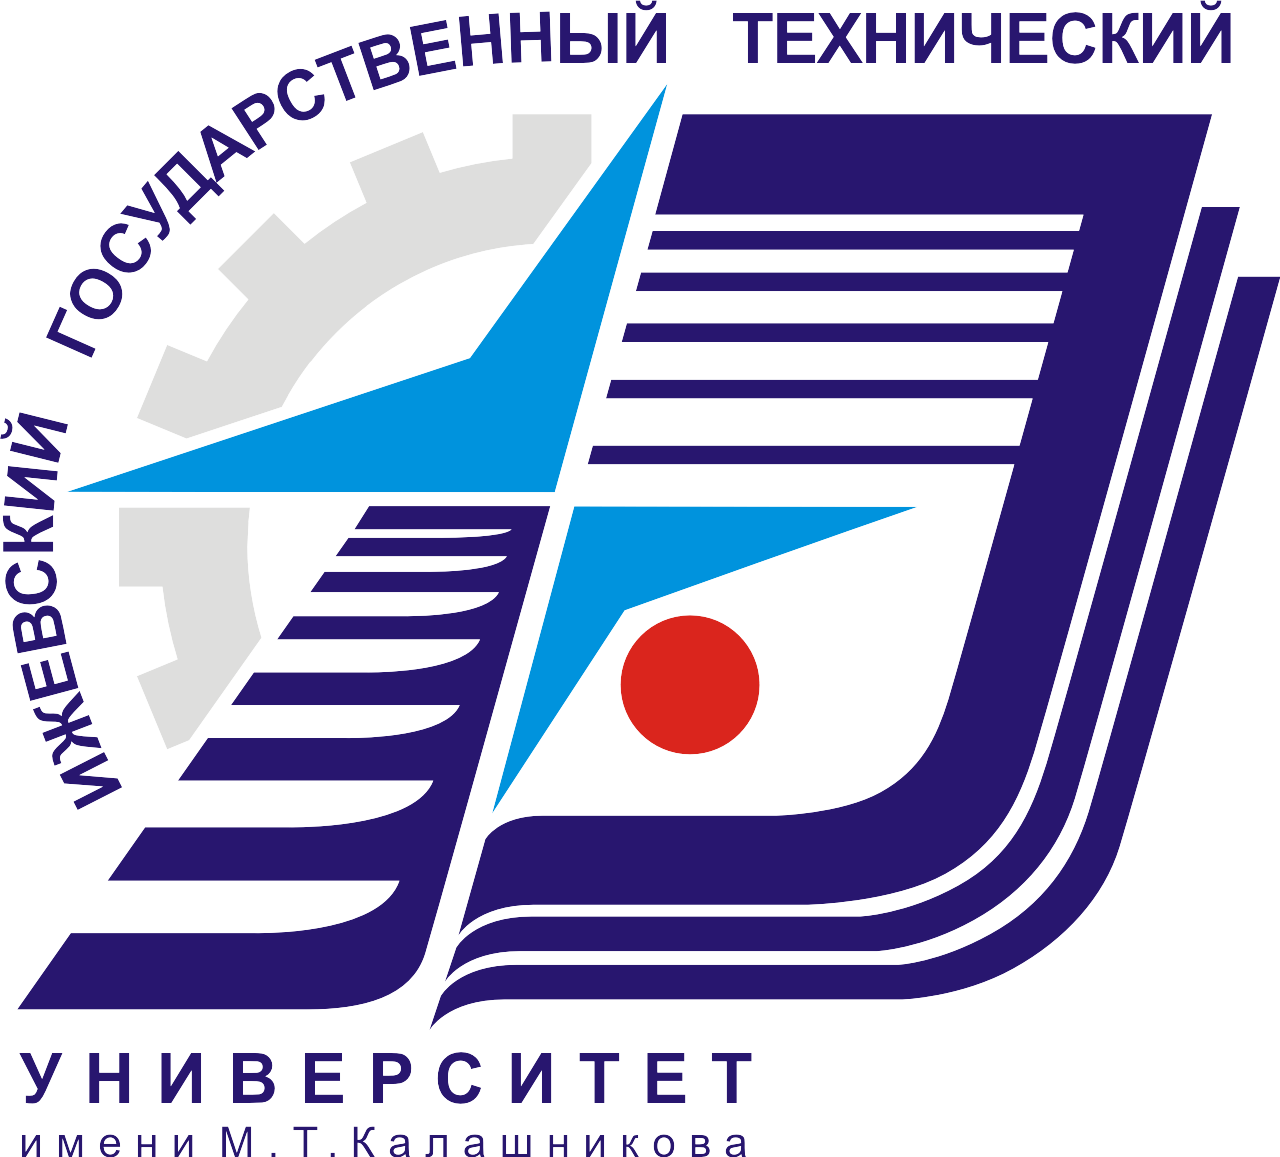 izhevsk_state_technical_university-logo